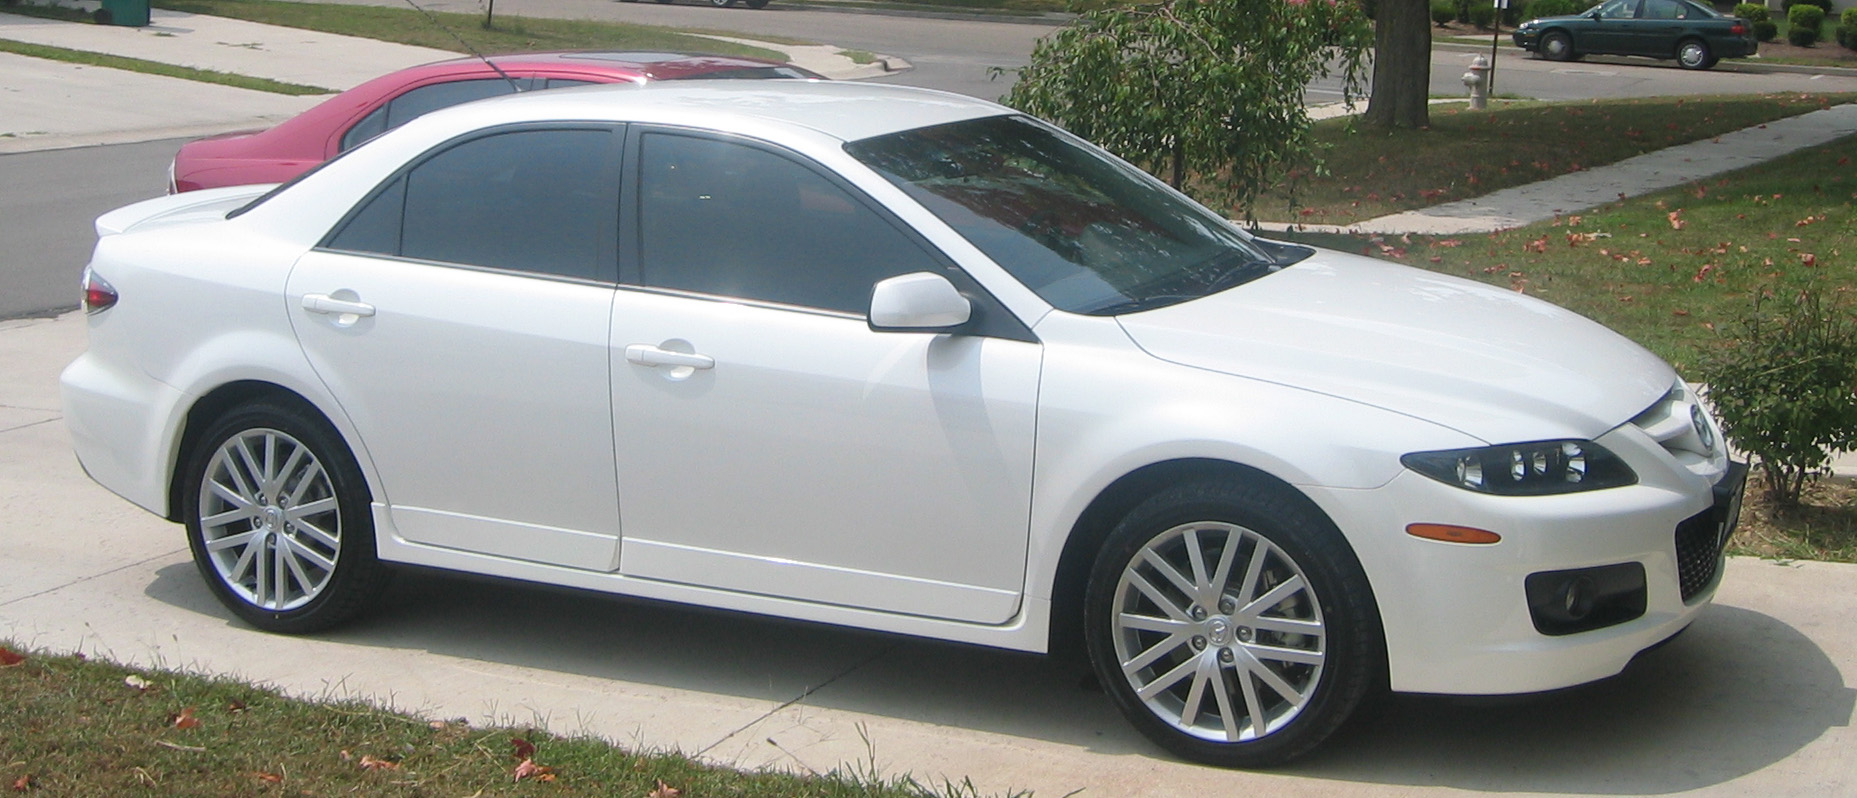 2006 mazda mazdaspeed mazda6 information and photos momentcar. Black Bedroom Furniture Sets. Home Design Ideas